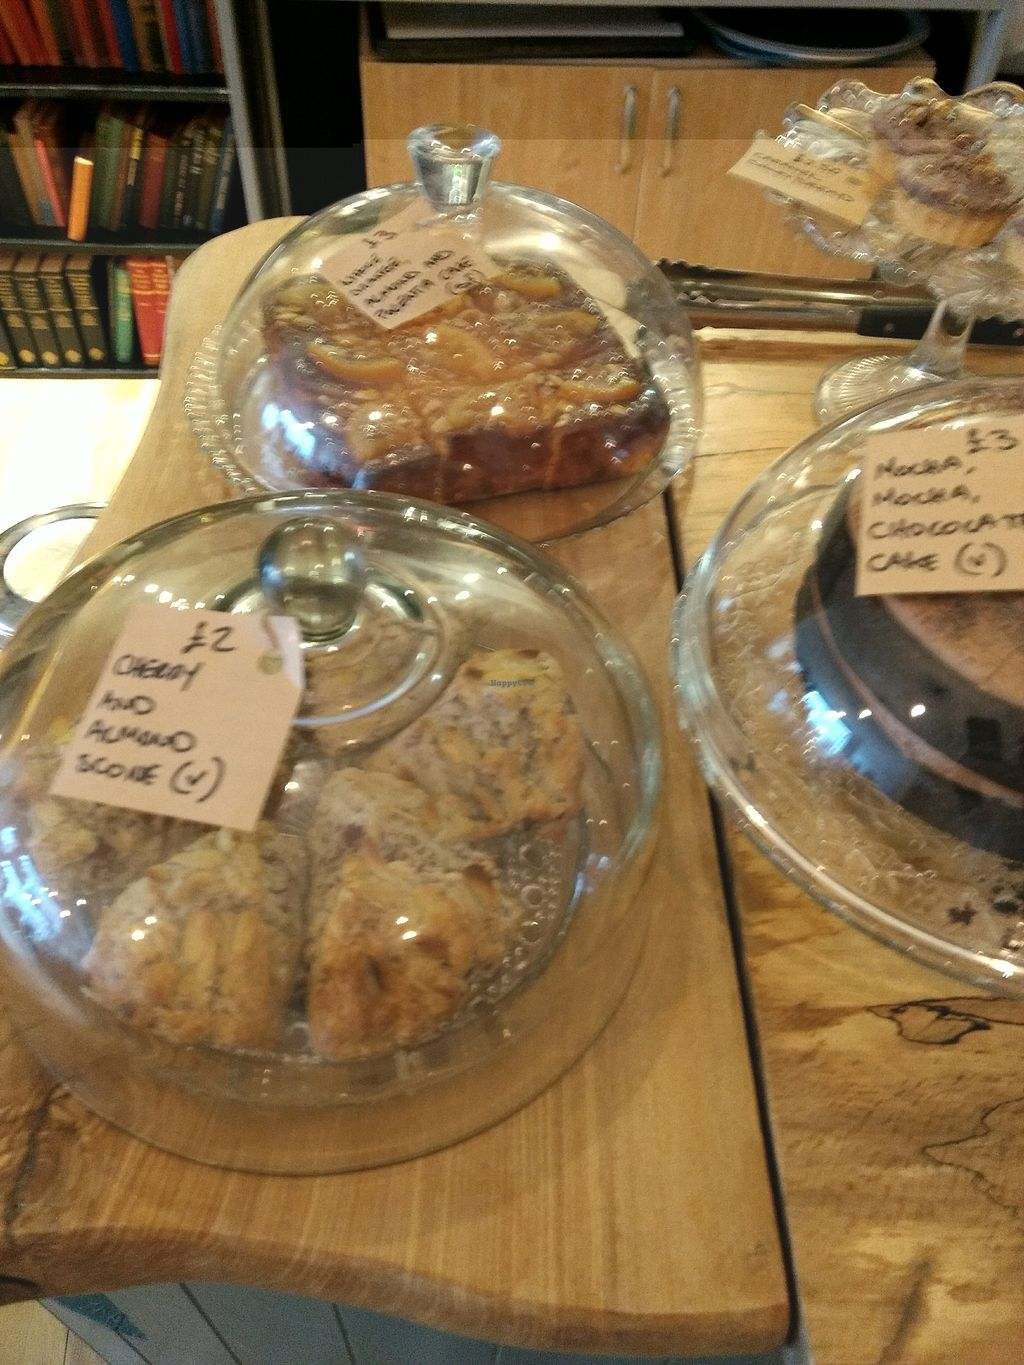 """Photo of Shoe Tree Cafe  by <a href=""""/members/profile/craigmc"""">craigmc</a> <br/>cakes <br/> December 6, 2017  - <a href='/contact/abuse/image/102296/332859'>Report</a>"""